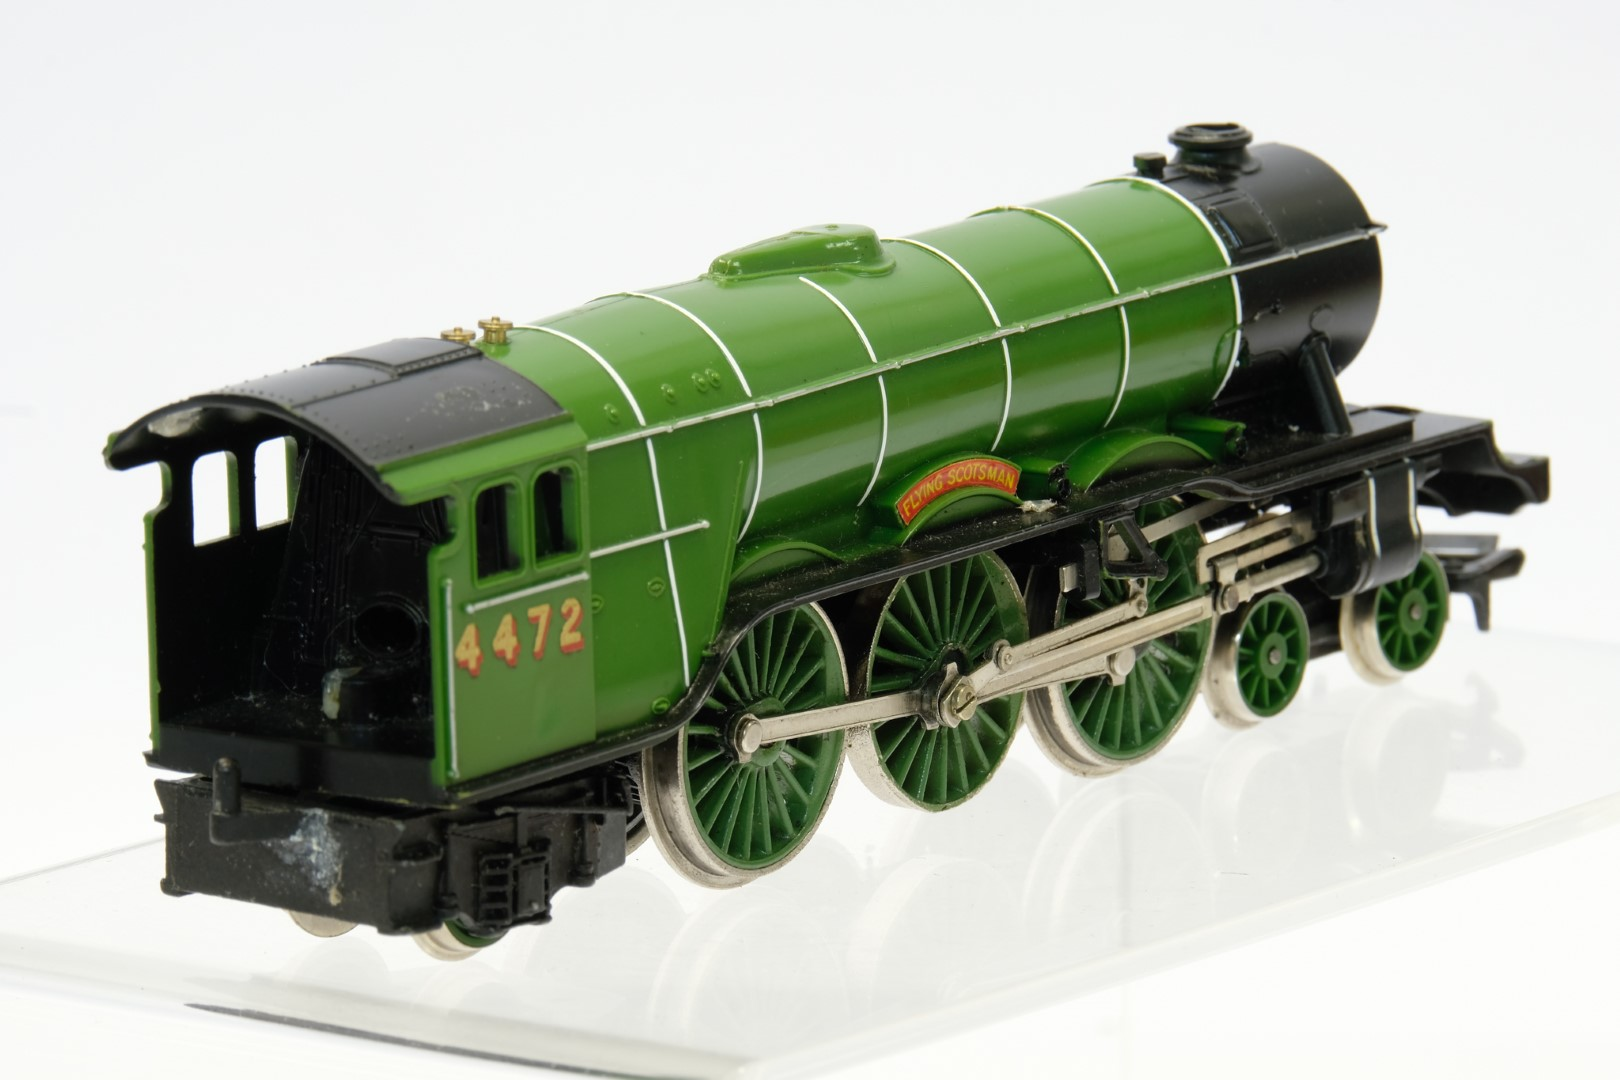 Hornby A1 Class 4-6-2 Steam Locomotive Lner 4472 Flying Scotsman - No Box | No Tender - Image 3 of 3